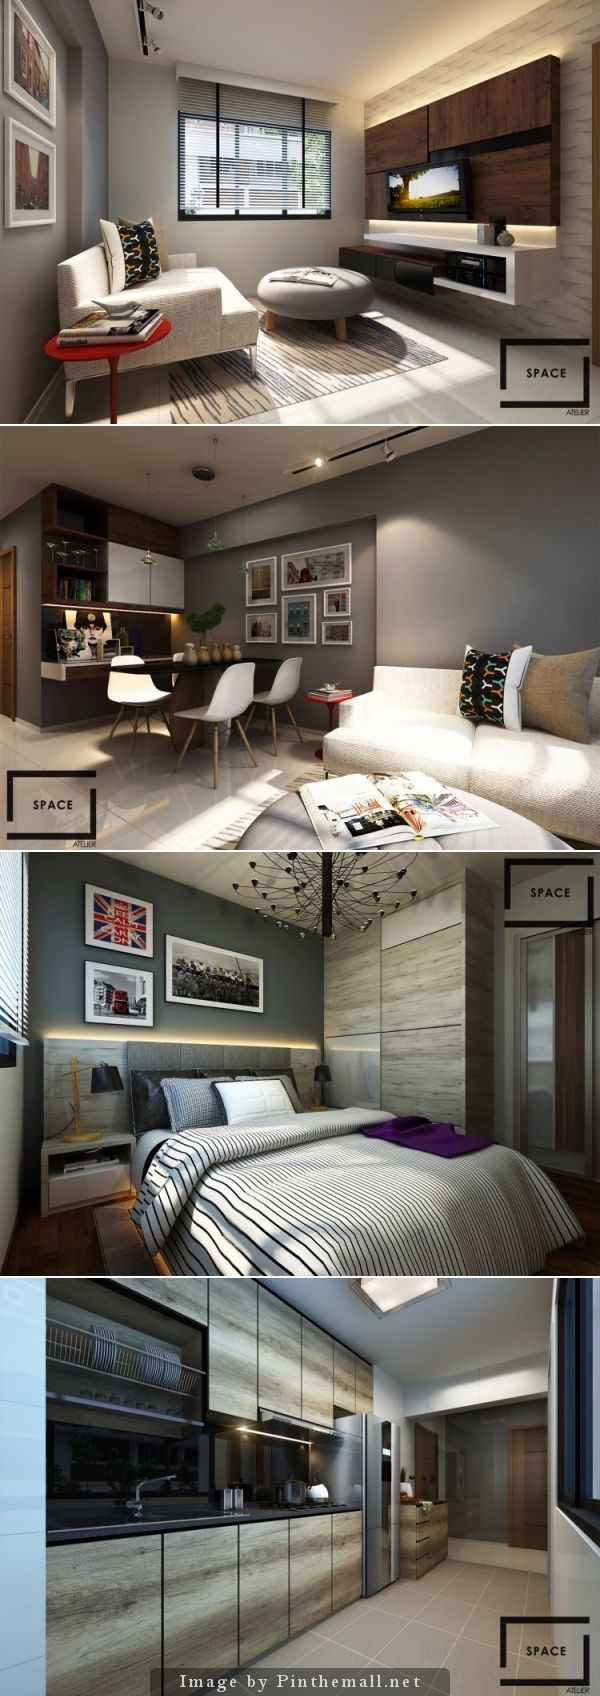 Hdb Two Room Reno: 39 Best Images About 2 Room HDB BTO On Pinterest